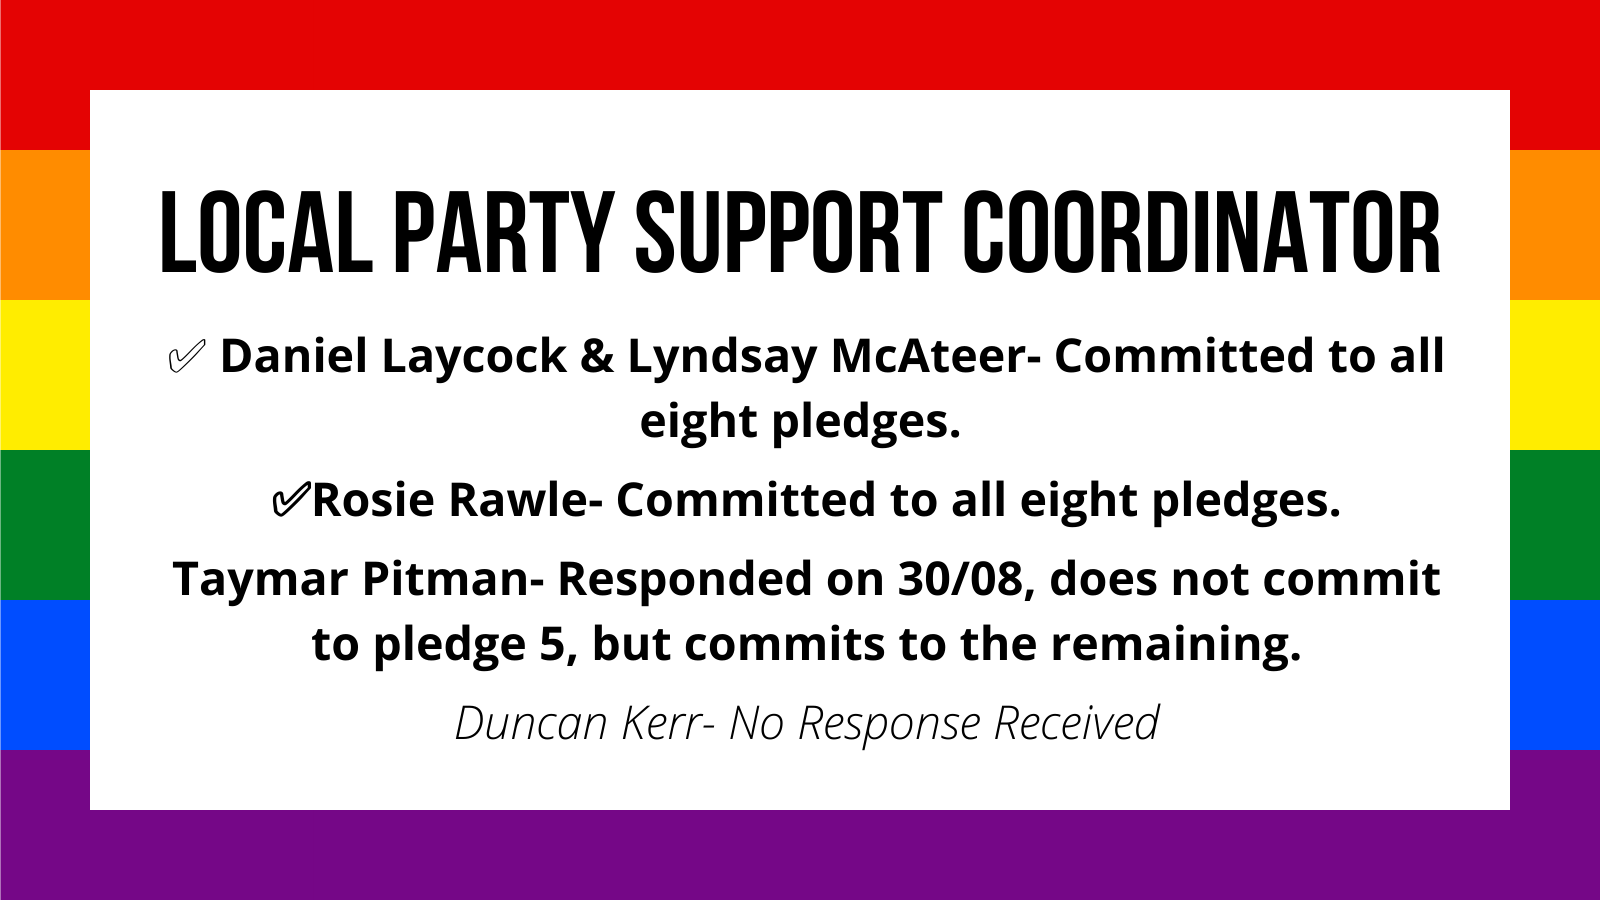 Local Party Support Coordinator ✅ Daniel Laycock & Lyndsay McAteer- Committed to all eight pledges. ✅Rosie Rawle- Committed to all eight pledges. Taymar Pitman- Responded on 30/08, does not commit to pledge 5, but commits to the remaining. Duncan Kerr- No Response Received